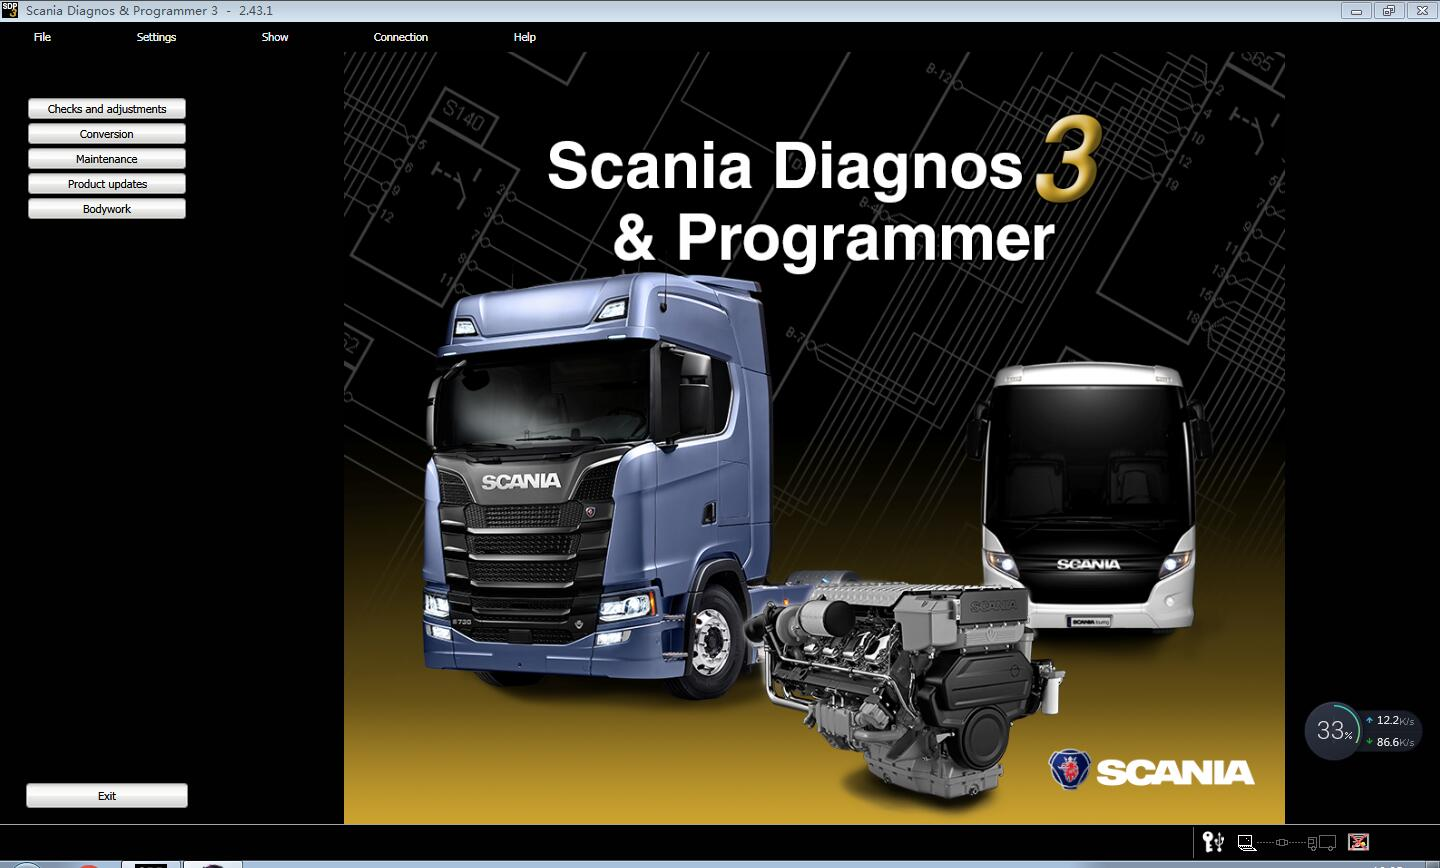 Scania Diagnos & Programmer 3 Version 2.43.1 SDP3  V2. 43.1 is available